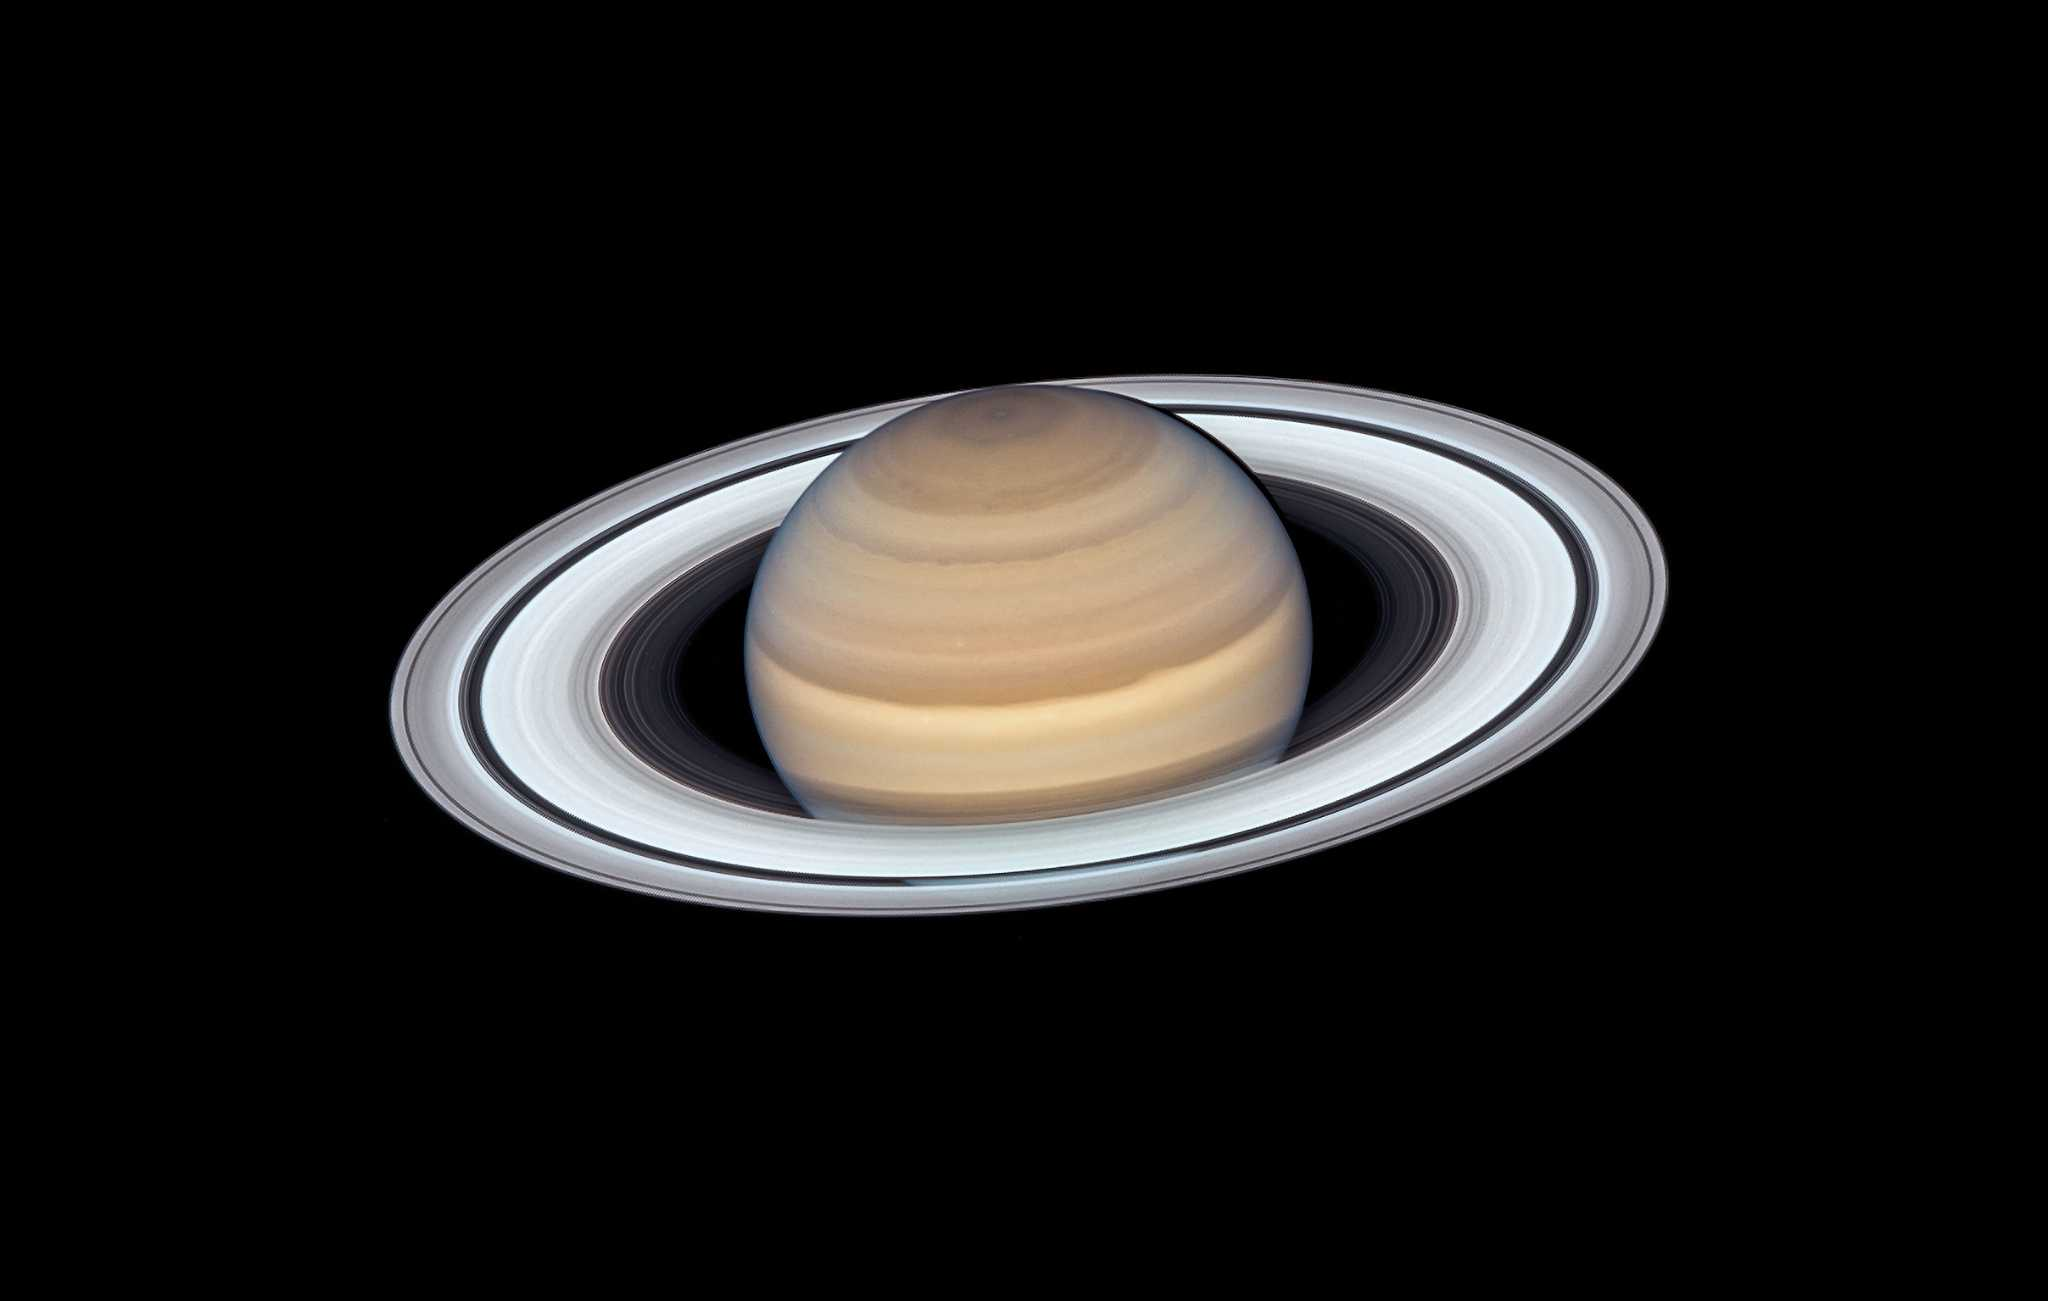 SwRI researcher: Saturn's rings are still billions of years old